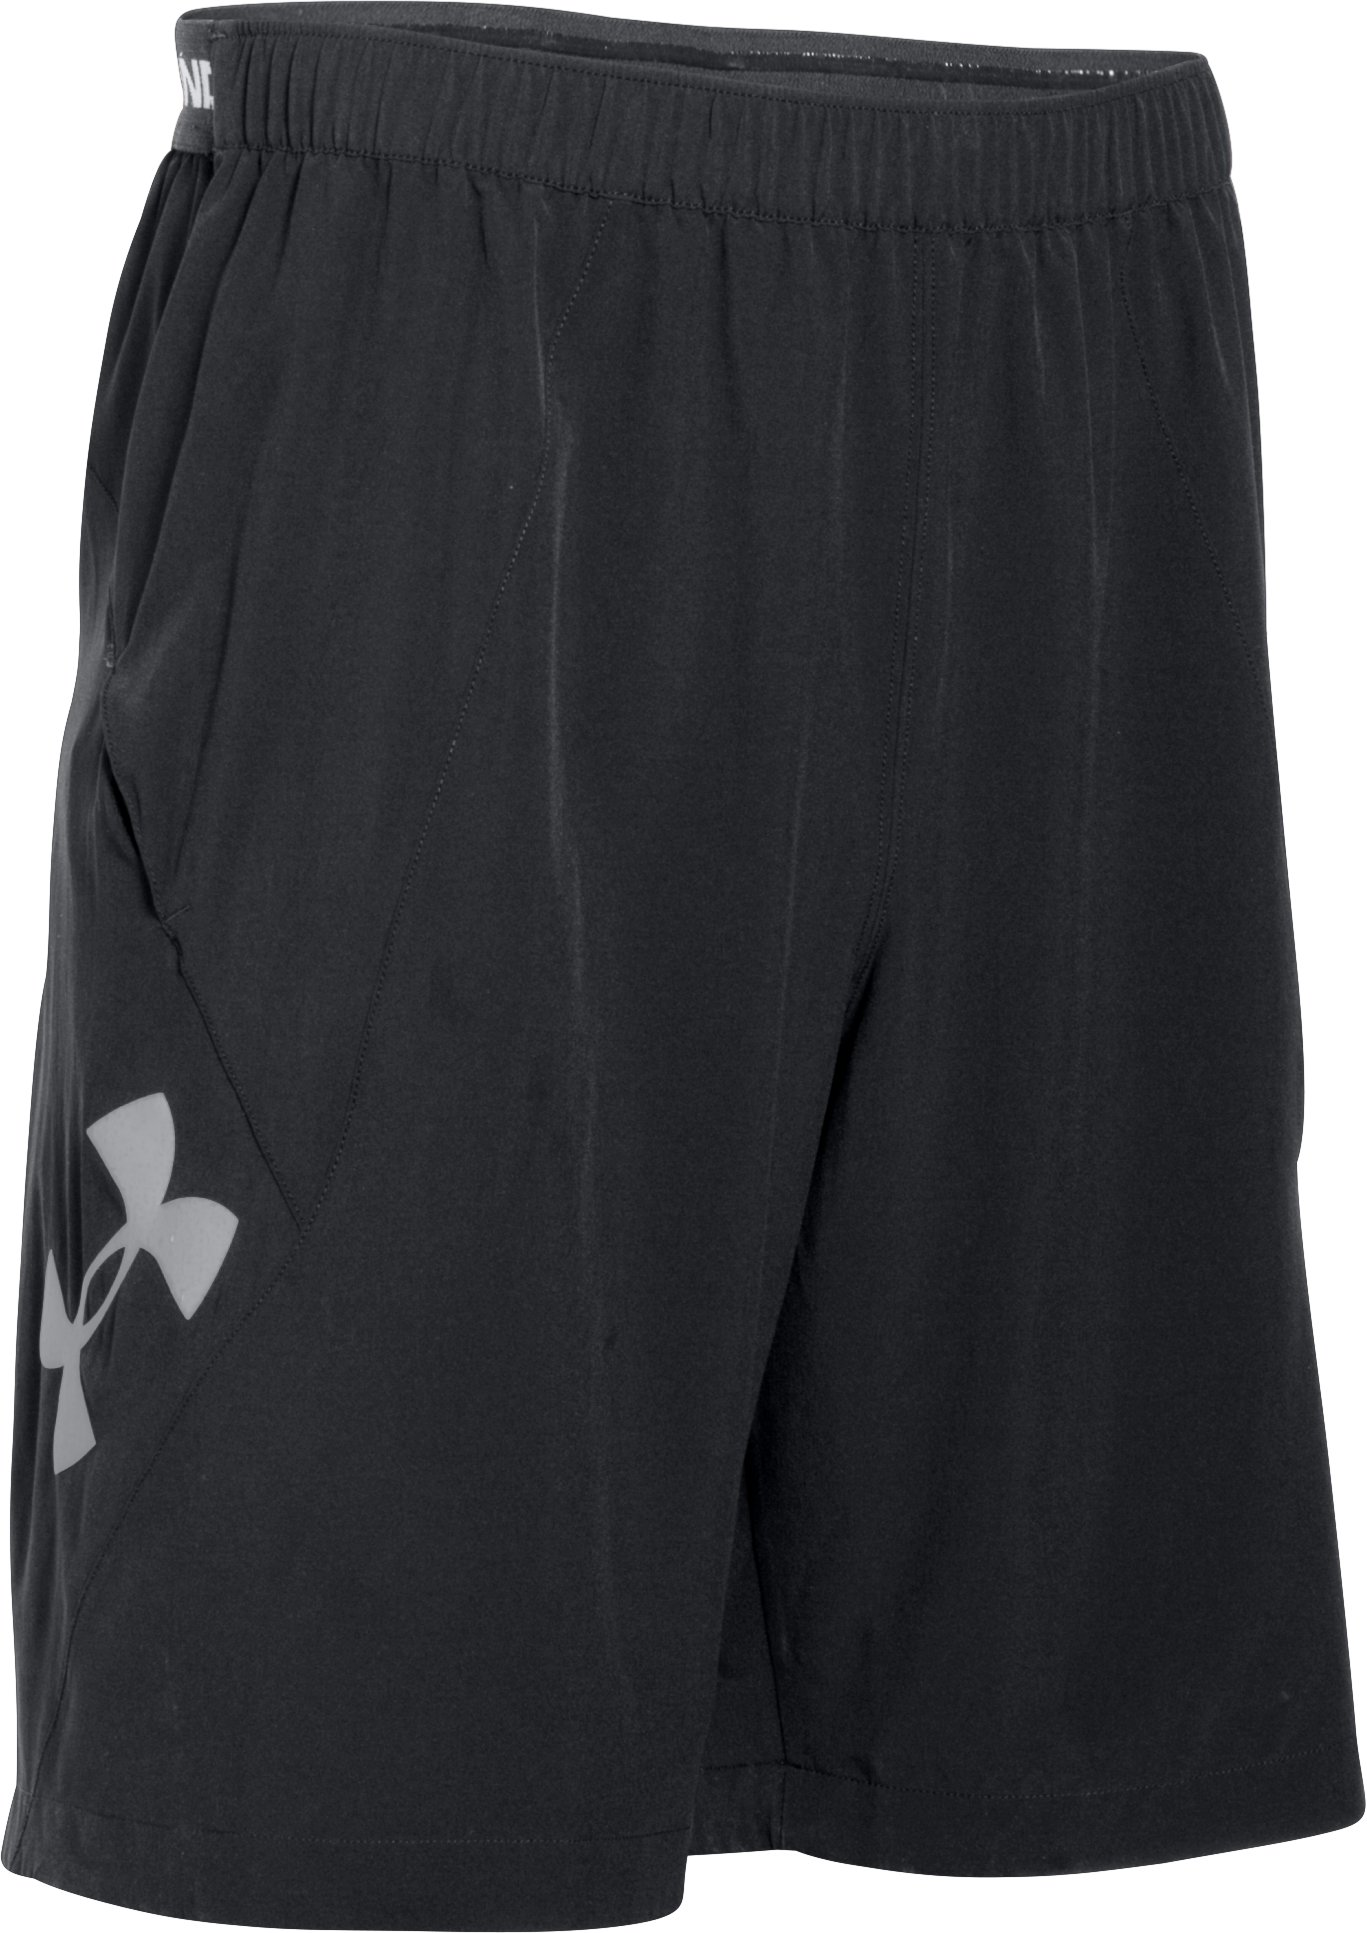 Men's UA Whisp Shorts, Black ,